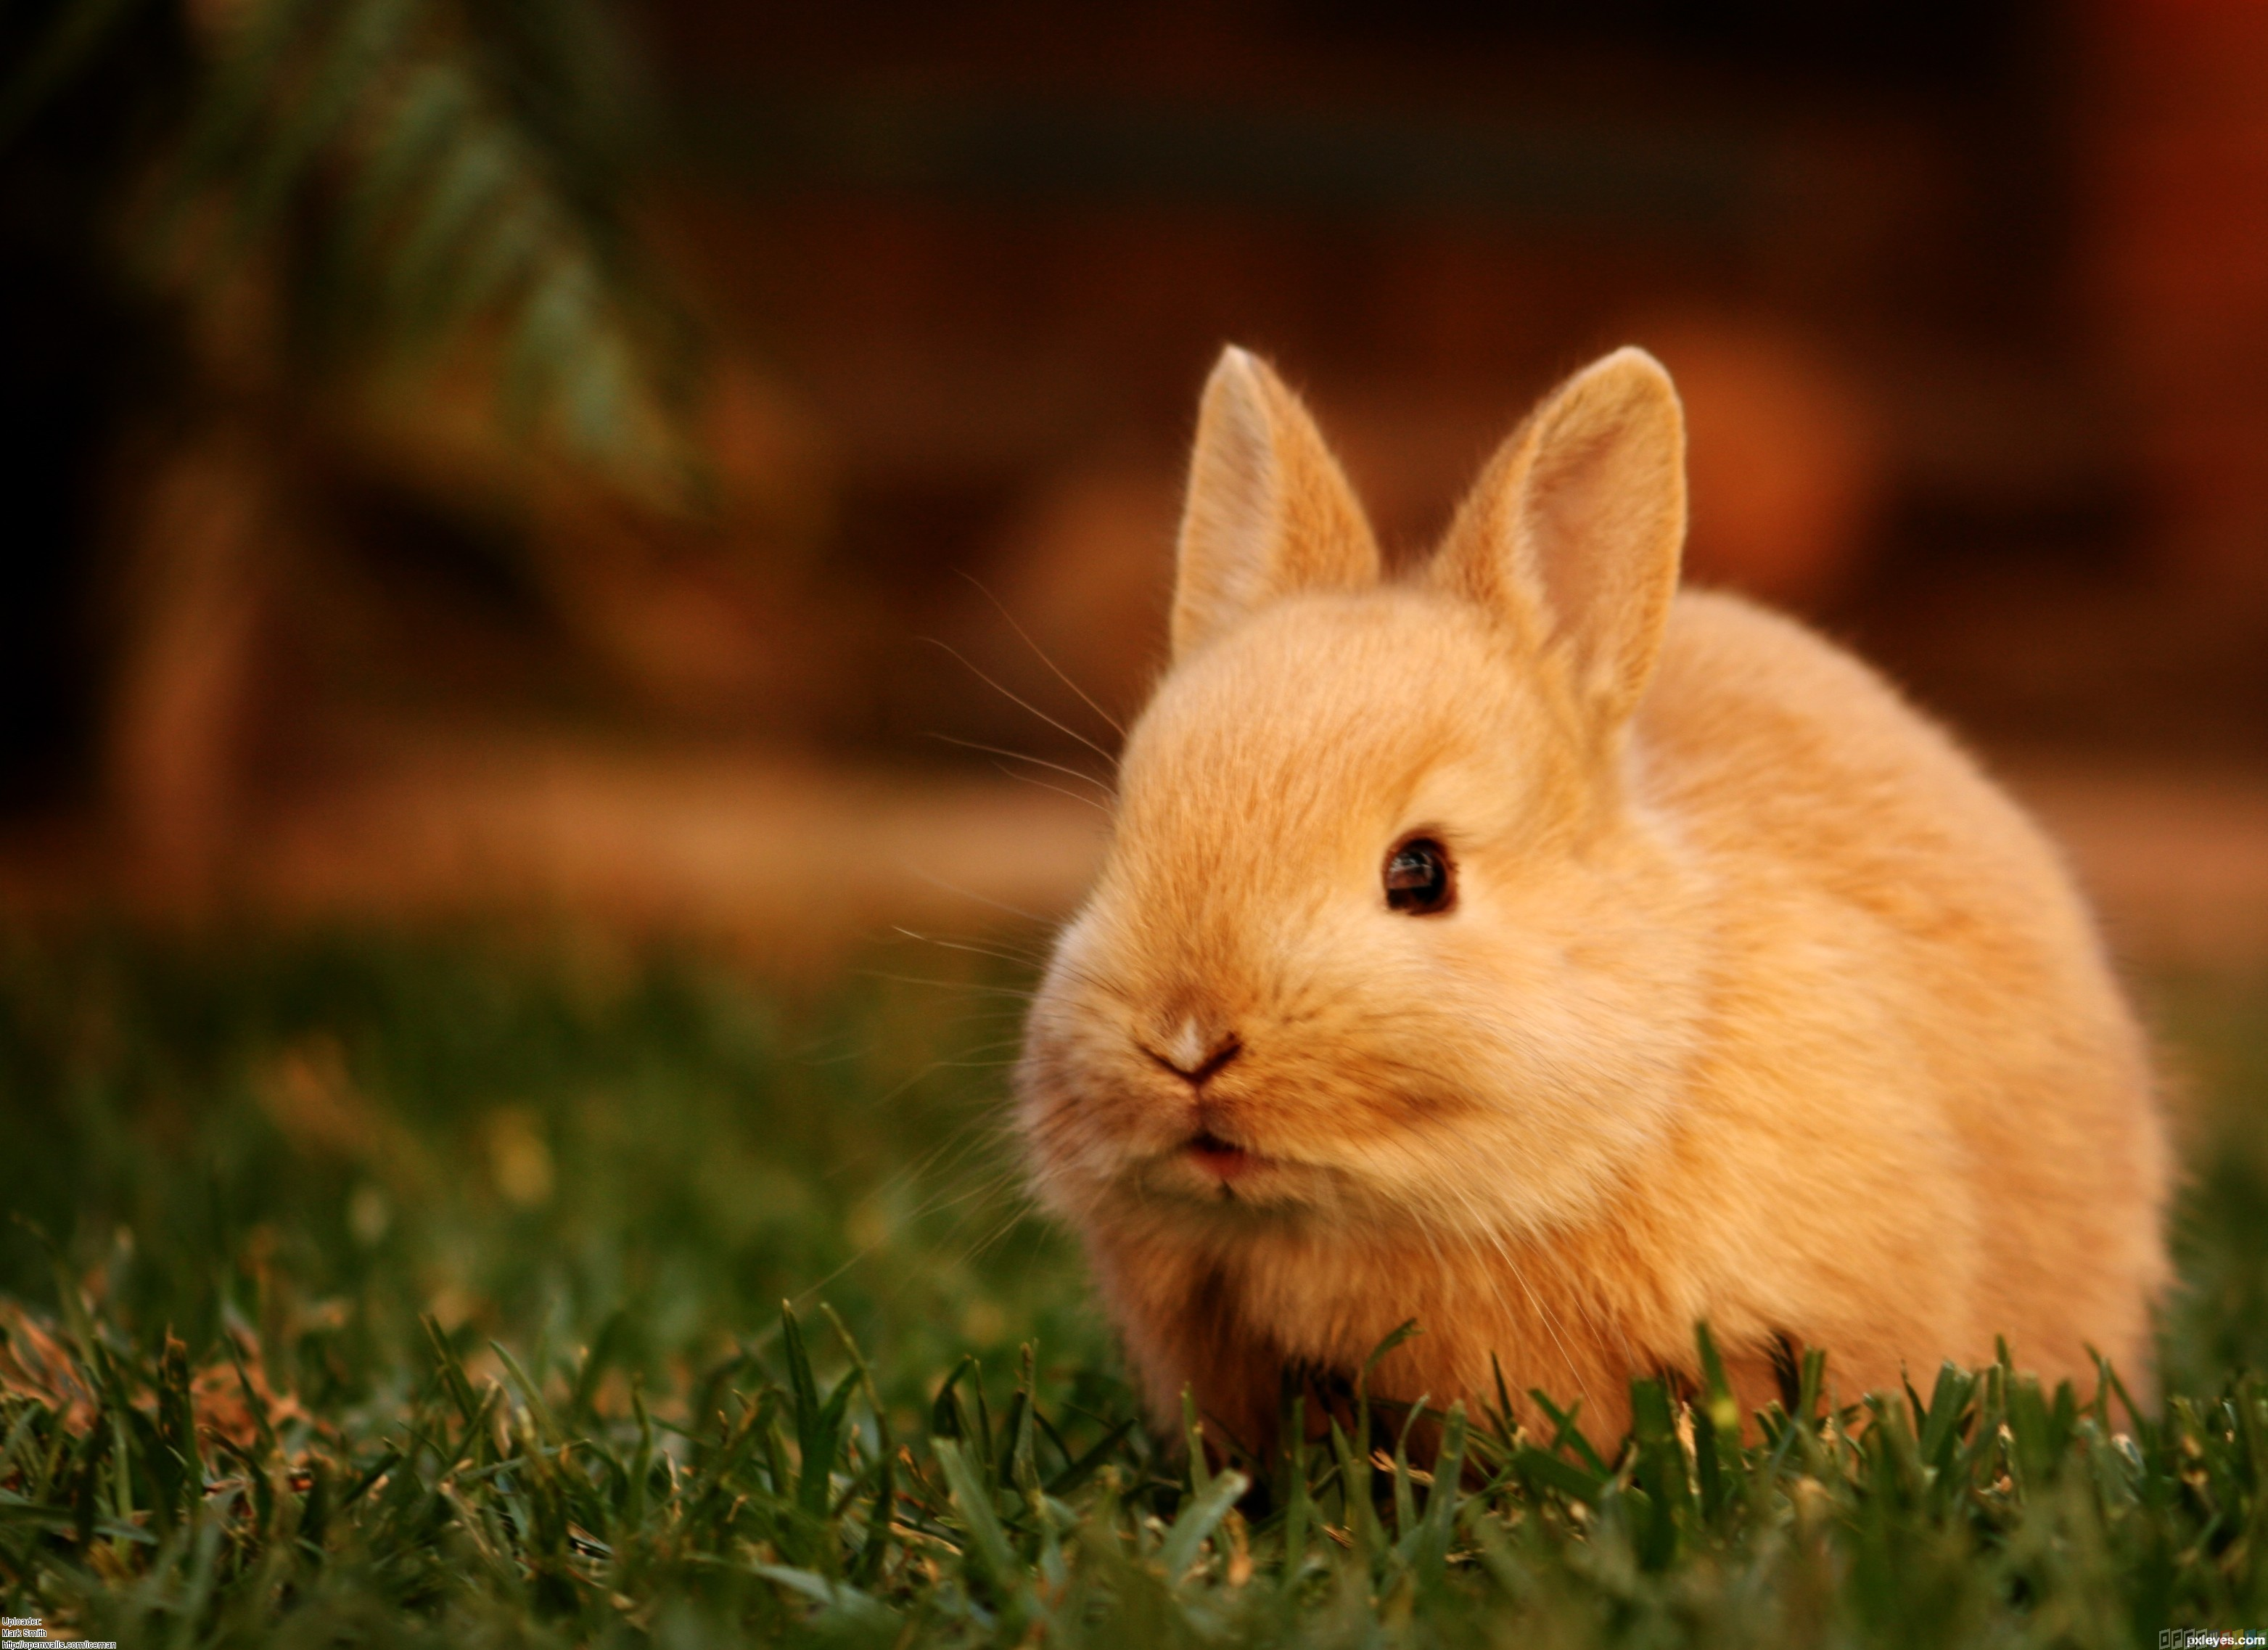 Sweet little bunny - close up